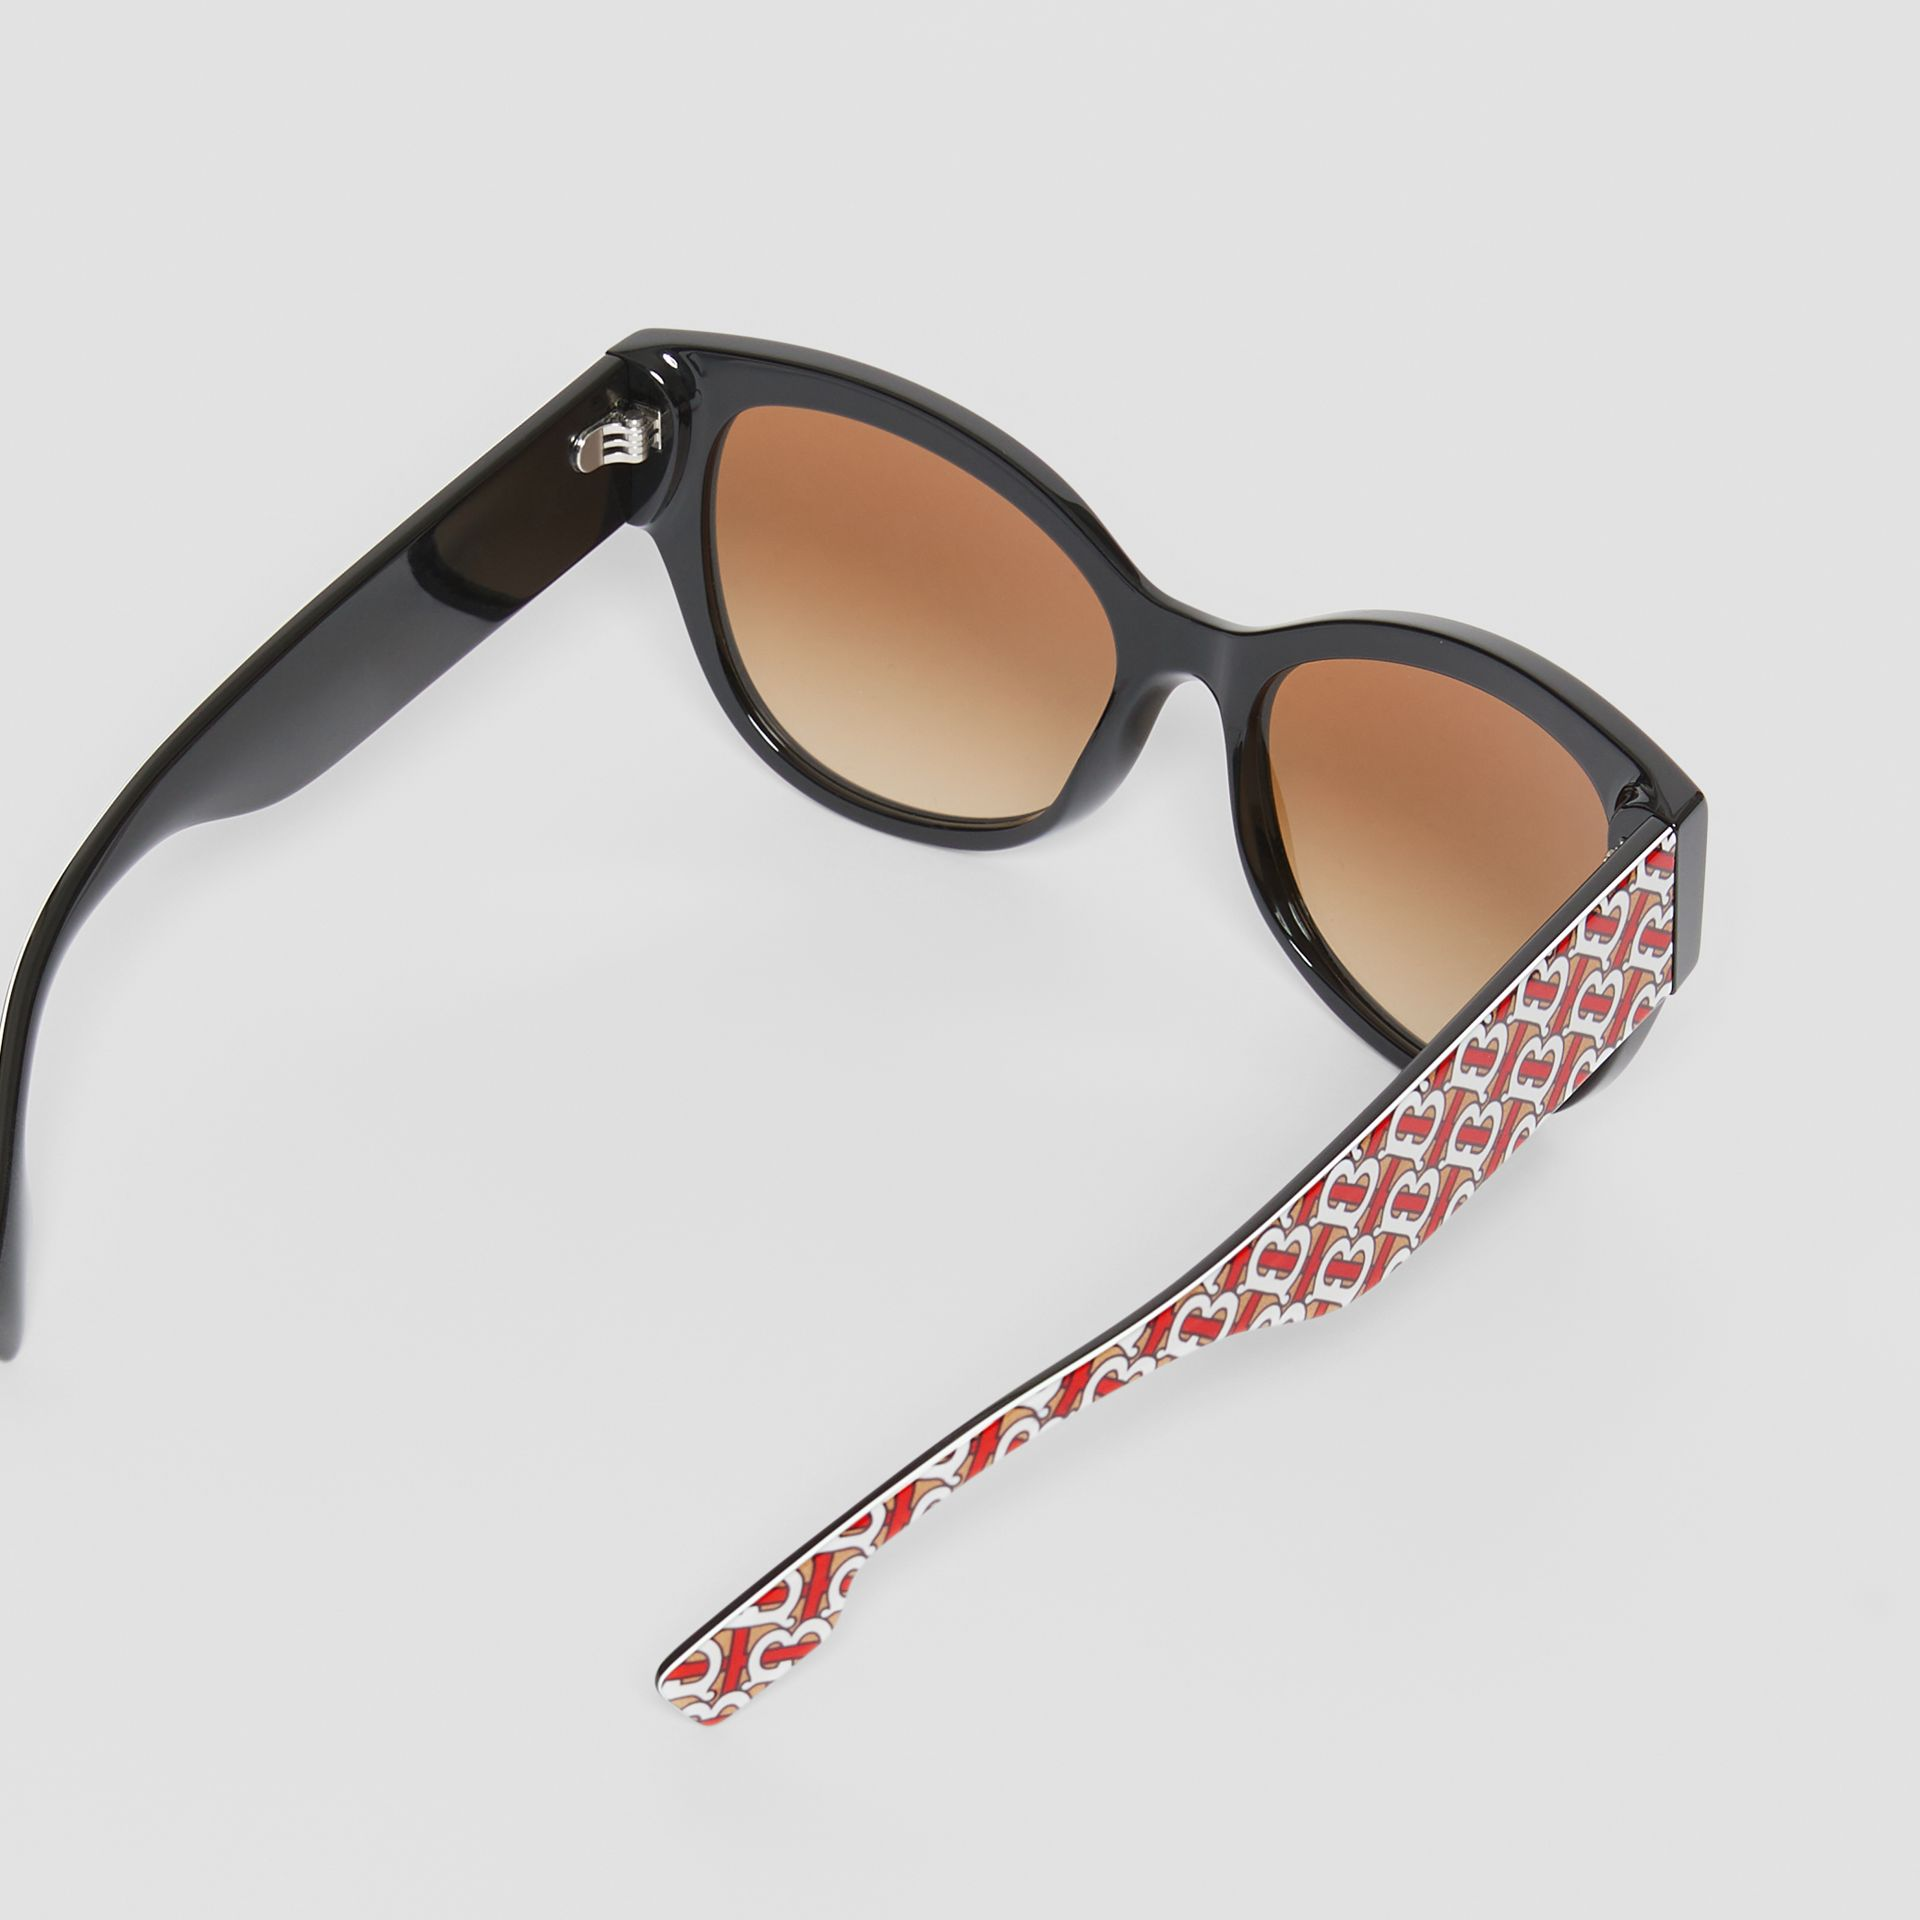 Monogram Detail Butterfly Frame Sunglasses in Black/beige - Women | Burberry United Kingdom - gallery image 3